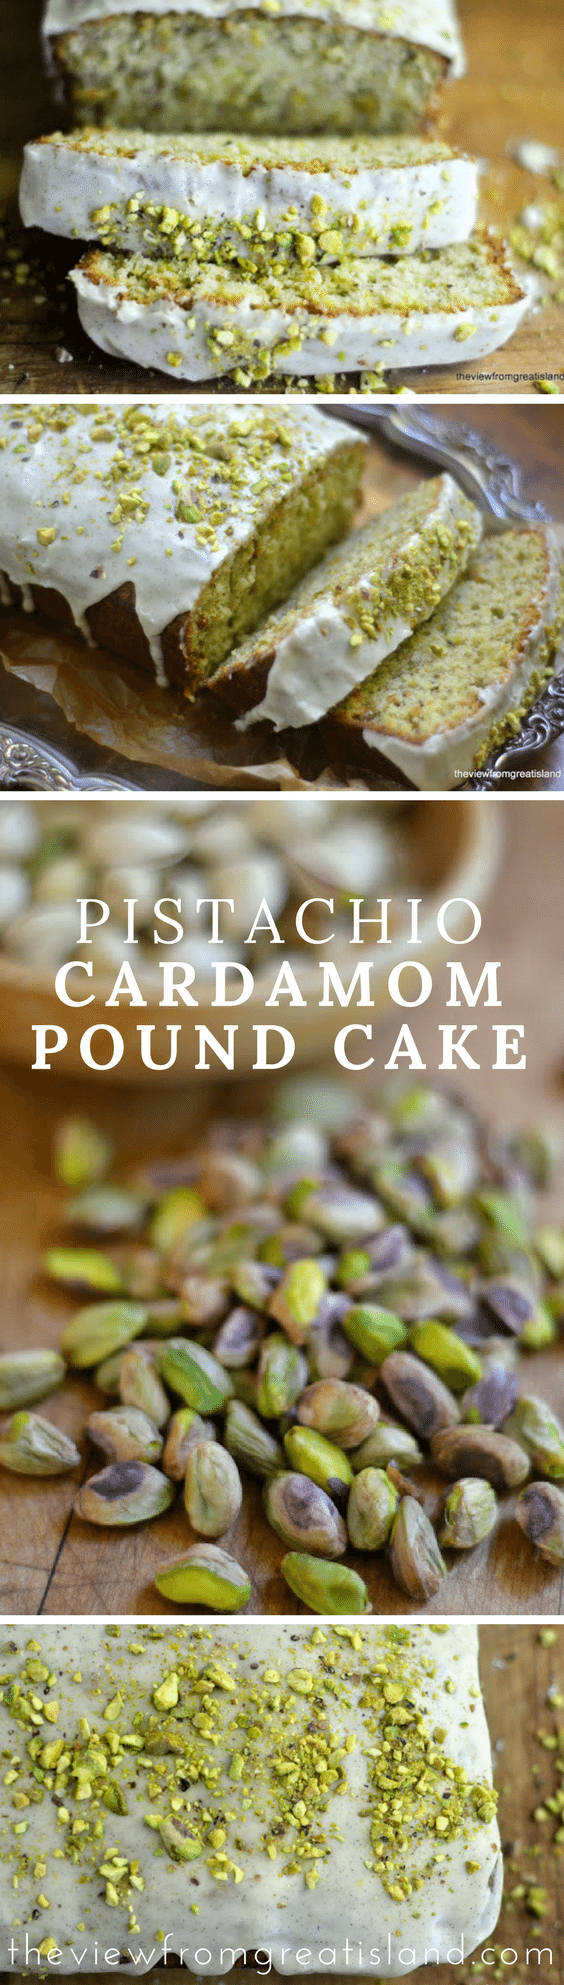 Pistachio Cardamom Pound Cake features a classic Middle Eastern flavor pairing of warm cardamom spice and crunchy pistachios --- it's an unusual and delicious cake perfect with coffee or tea. #cake #poundcake #cardamom #pistachio #cardamomcake #pistachiocake #dessert #coffeecake #breakfast #brunch